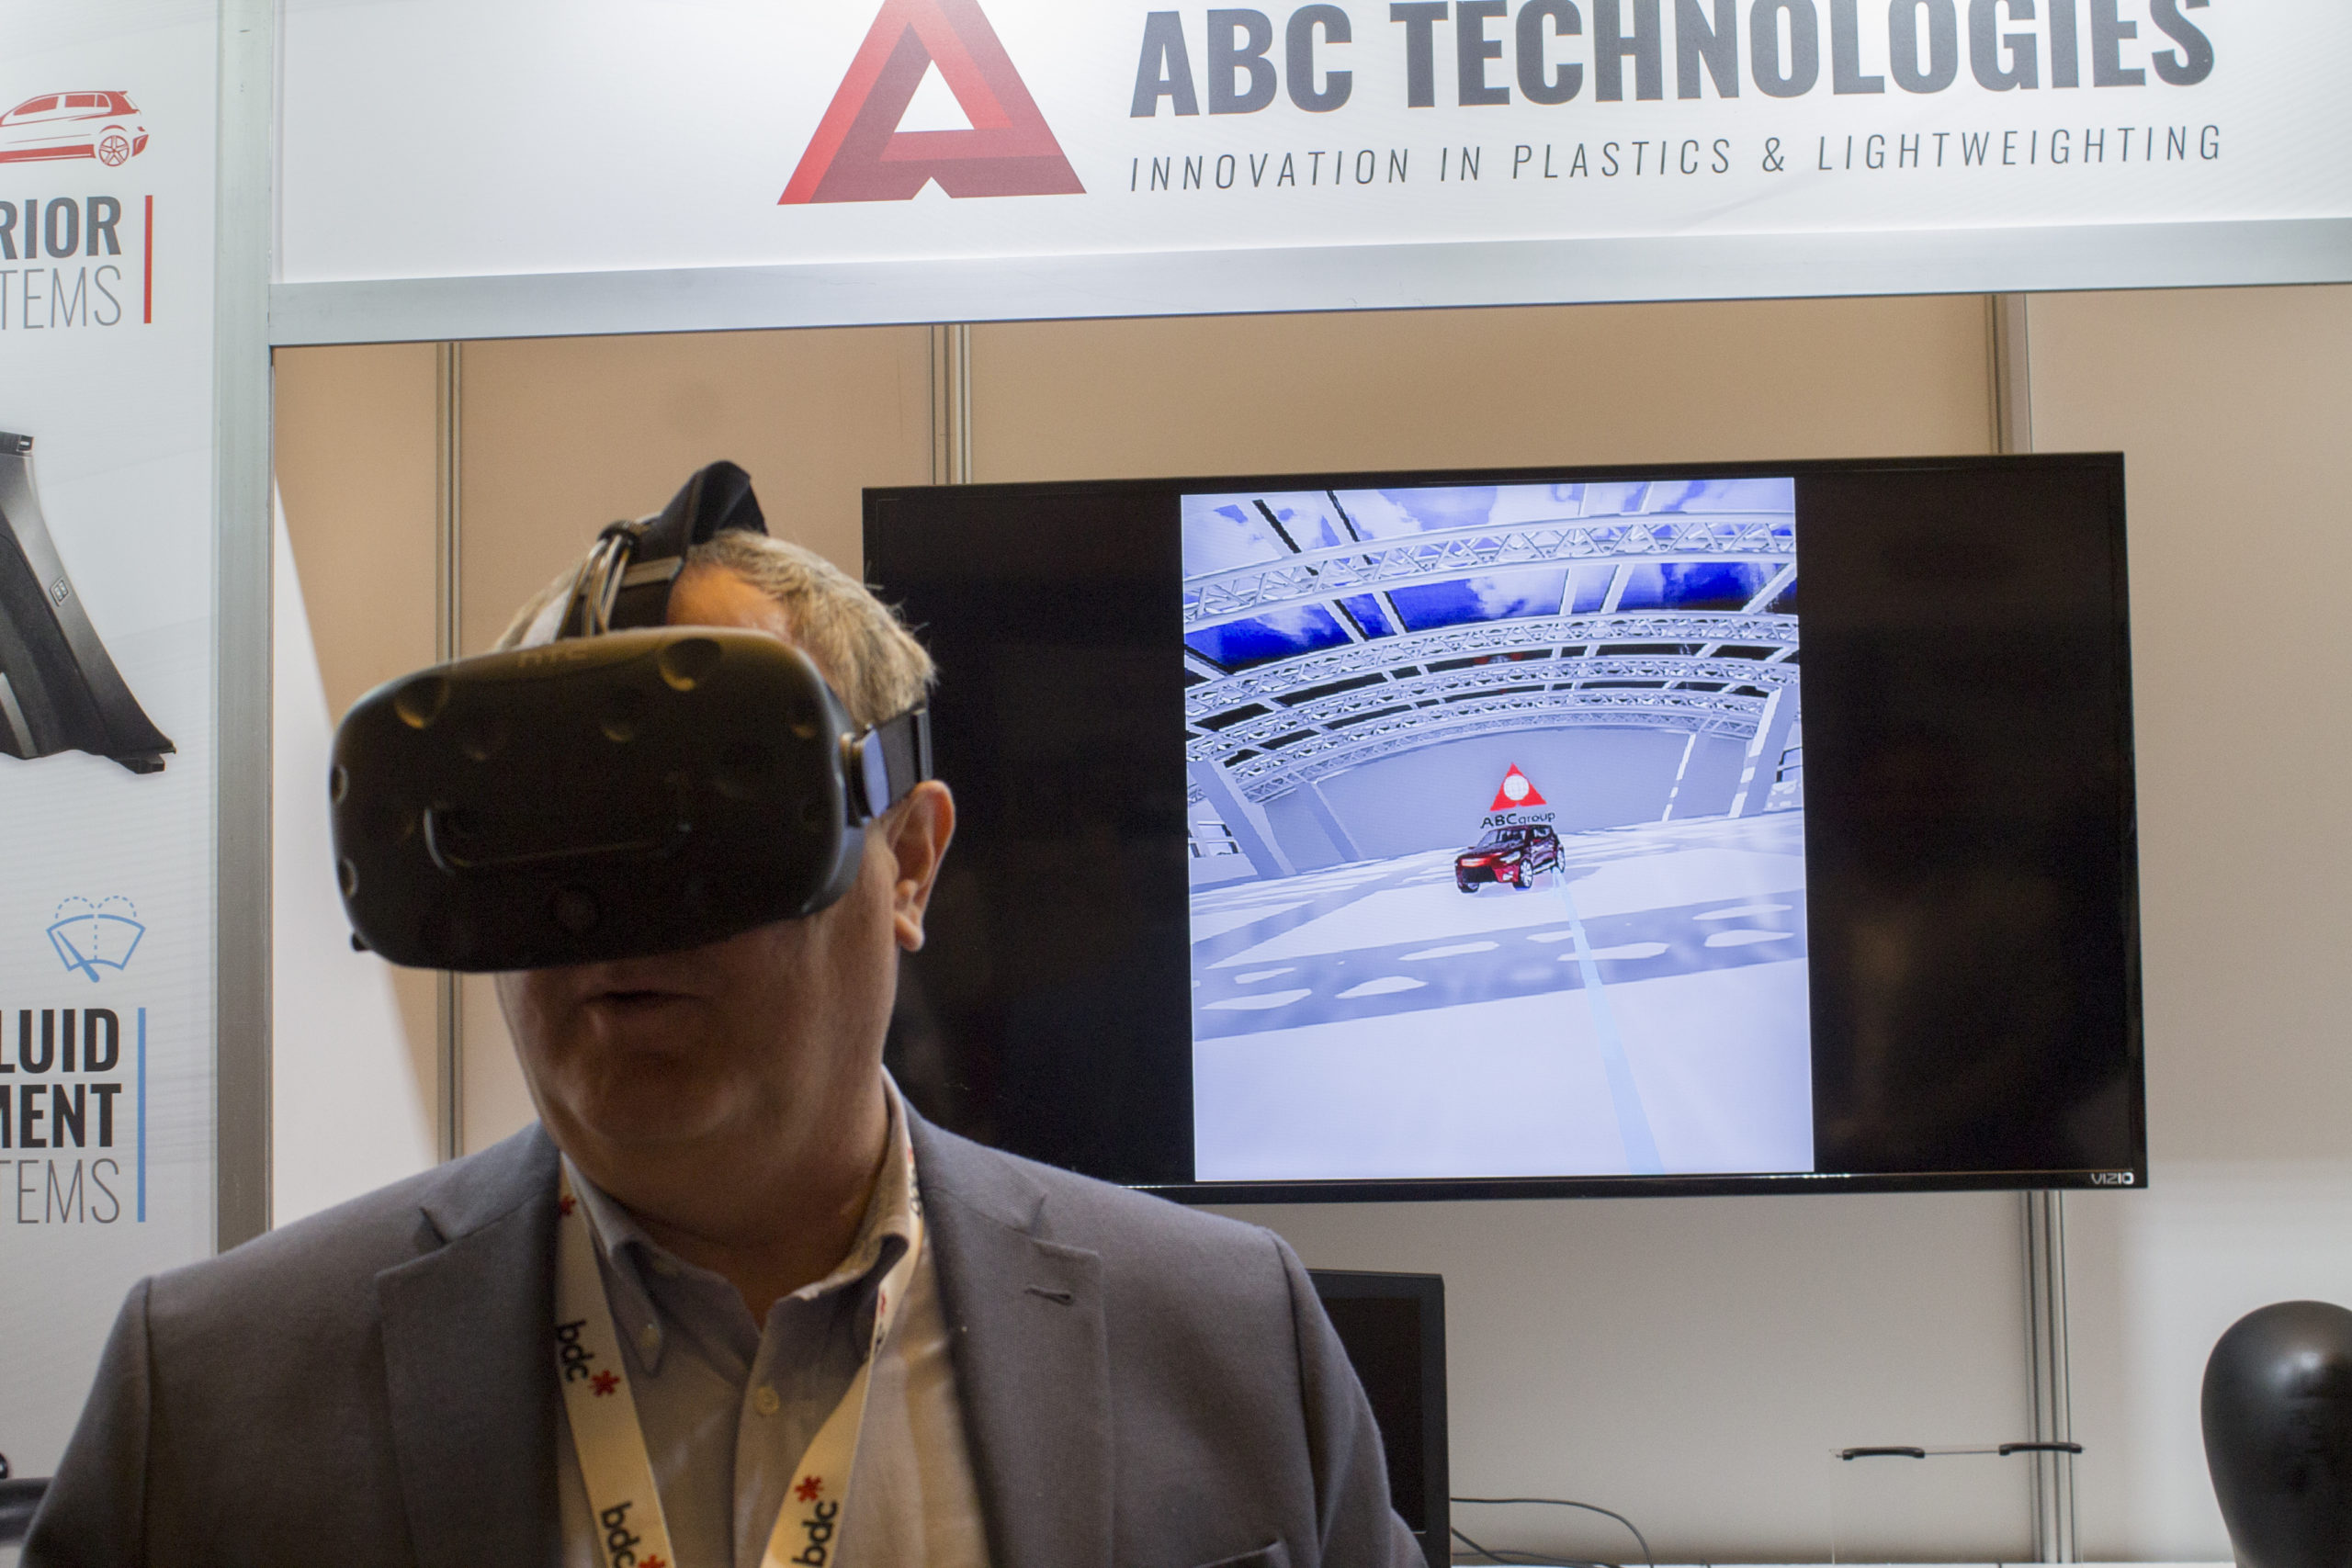 ABC Technologies' Virtual Reality Experience